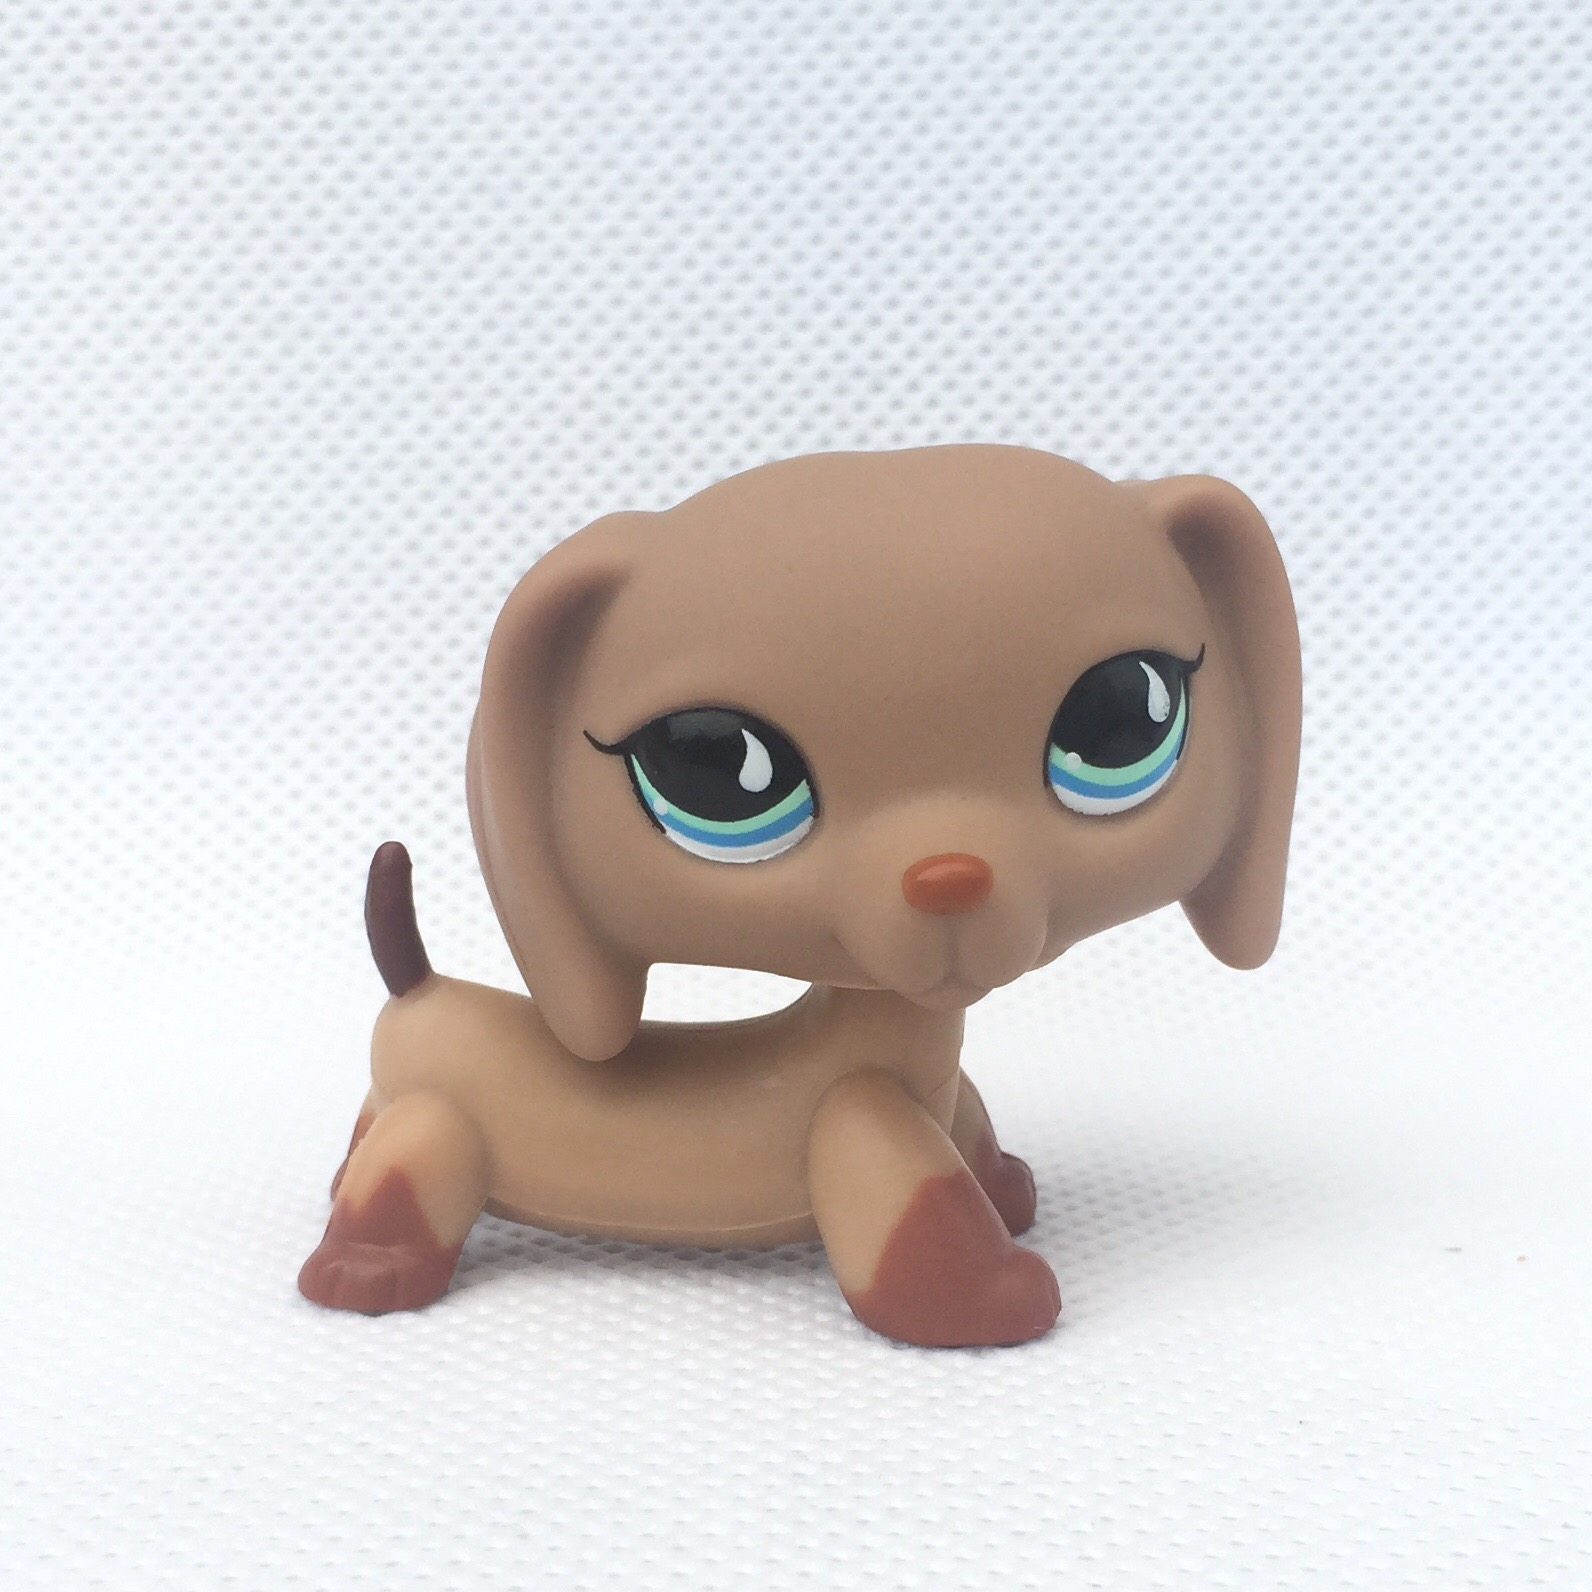 pet shop toys Wiener Dog#518 Teardrop Blue Eye Chocolate Puppy Kids Toy Gift saintgi toy bag 12pcs bag random little pet shop lps toys animal cartoon cat dog action figures collection kids toys gift